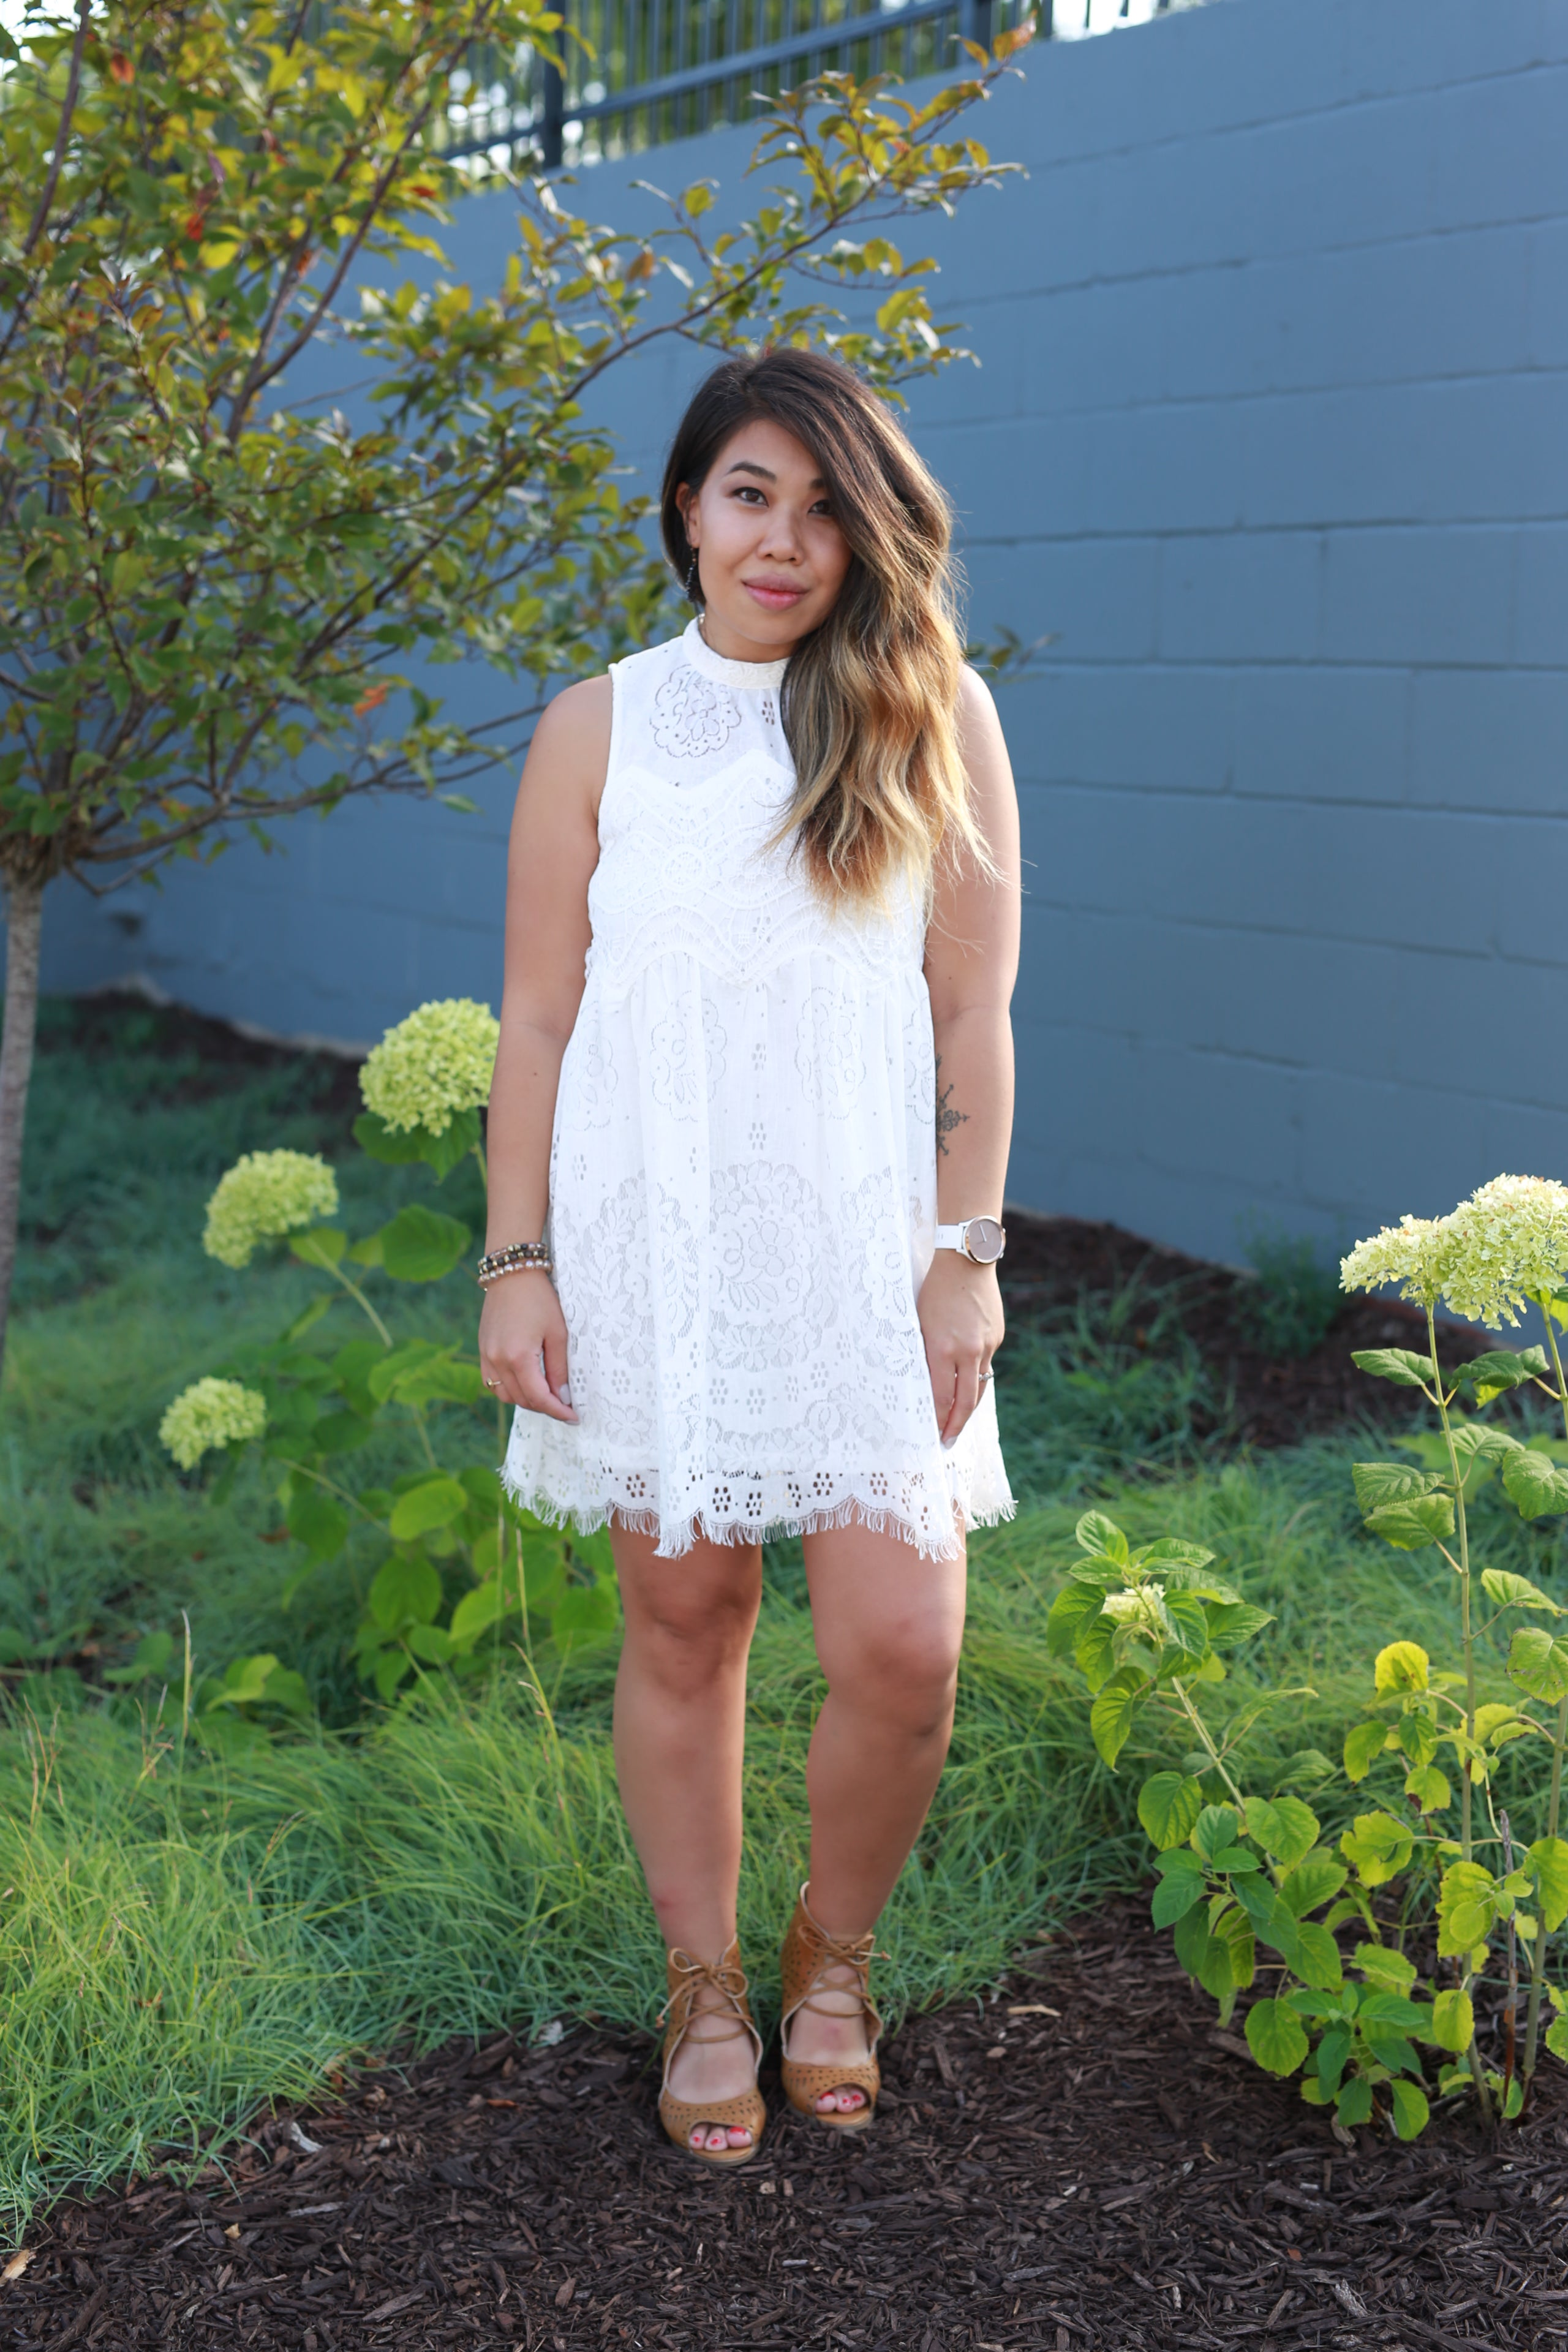 COVER ME IN LACE WHITE DRESS